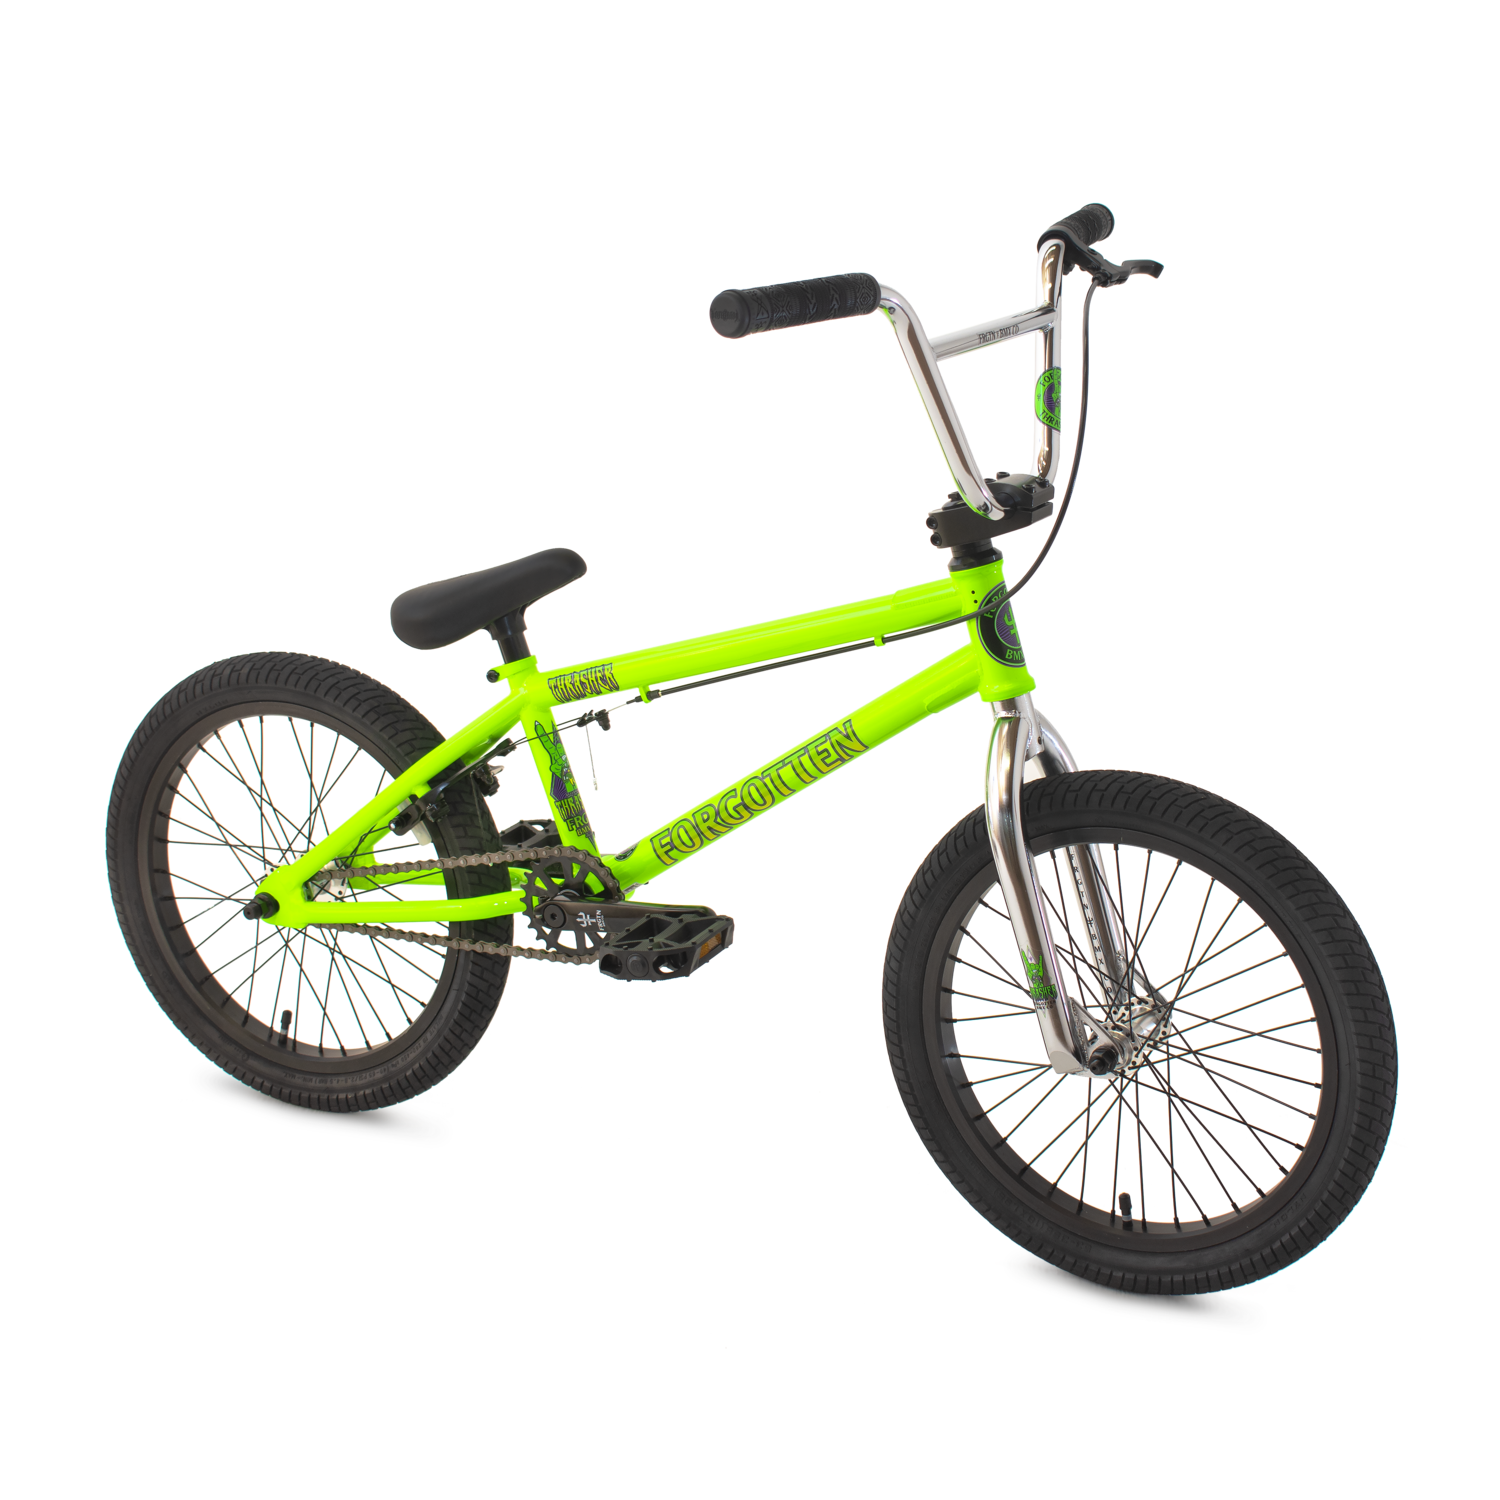 "Thrasher 18"" BMX bike - Green - Forgotten BMX"